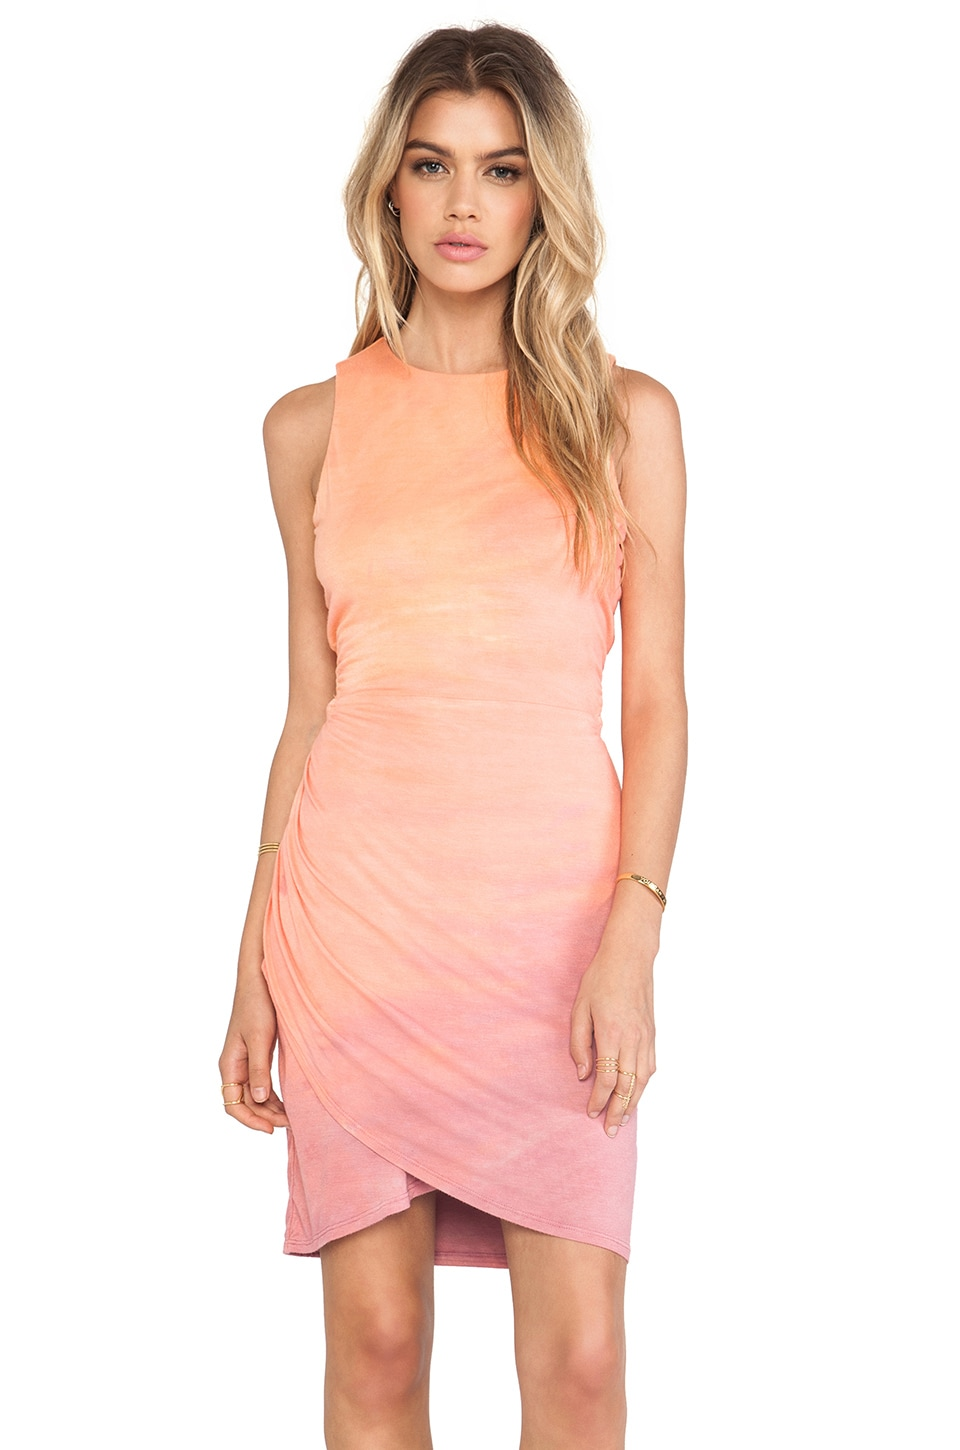 Gypsy 05 Desouk Wrap Dress in Peach & Rose